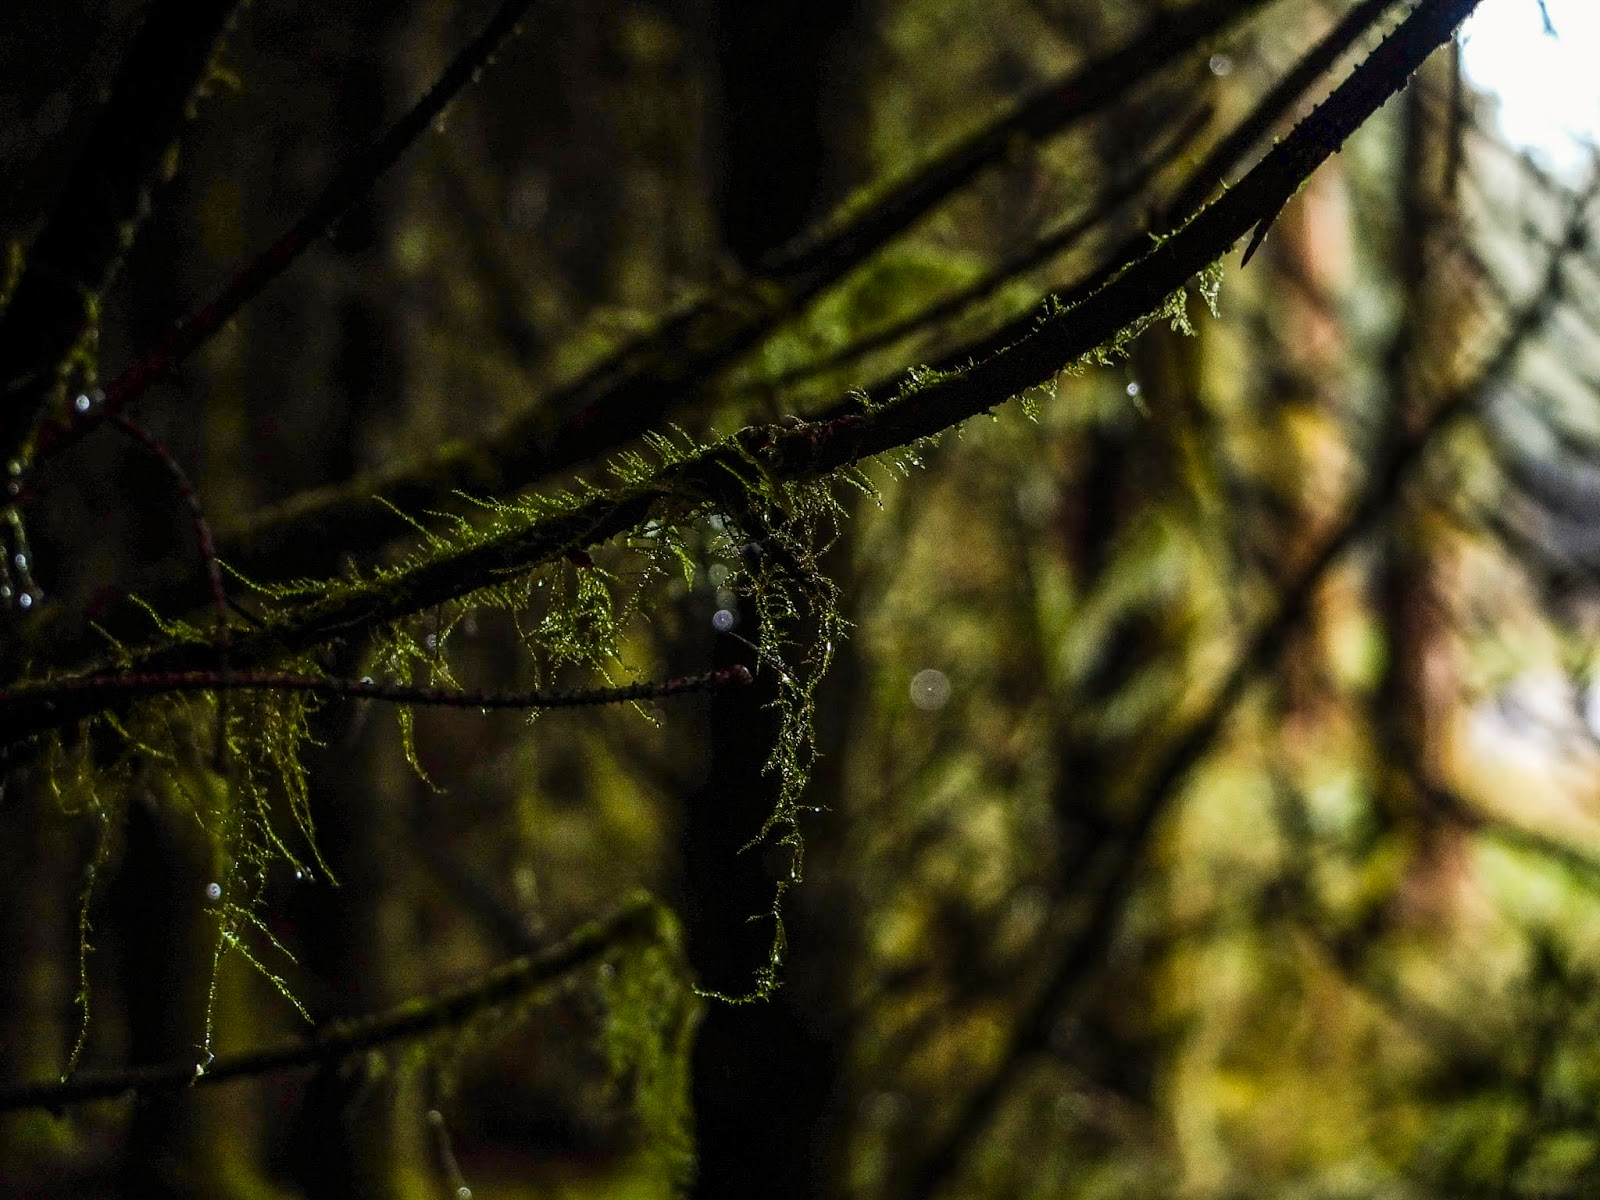 Dewy moss hanging off a tree branch inside a forest.